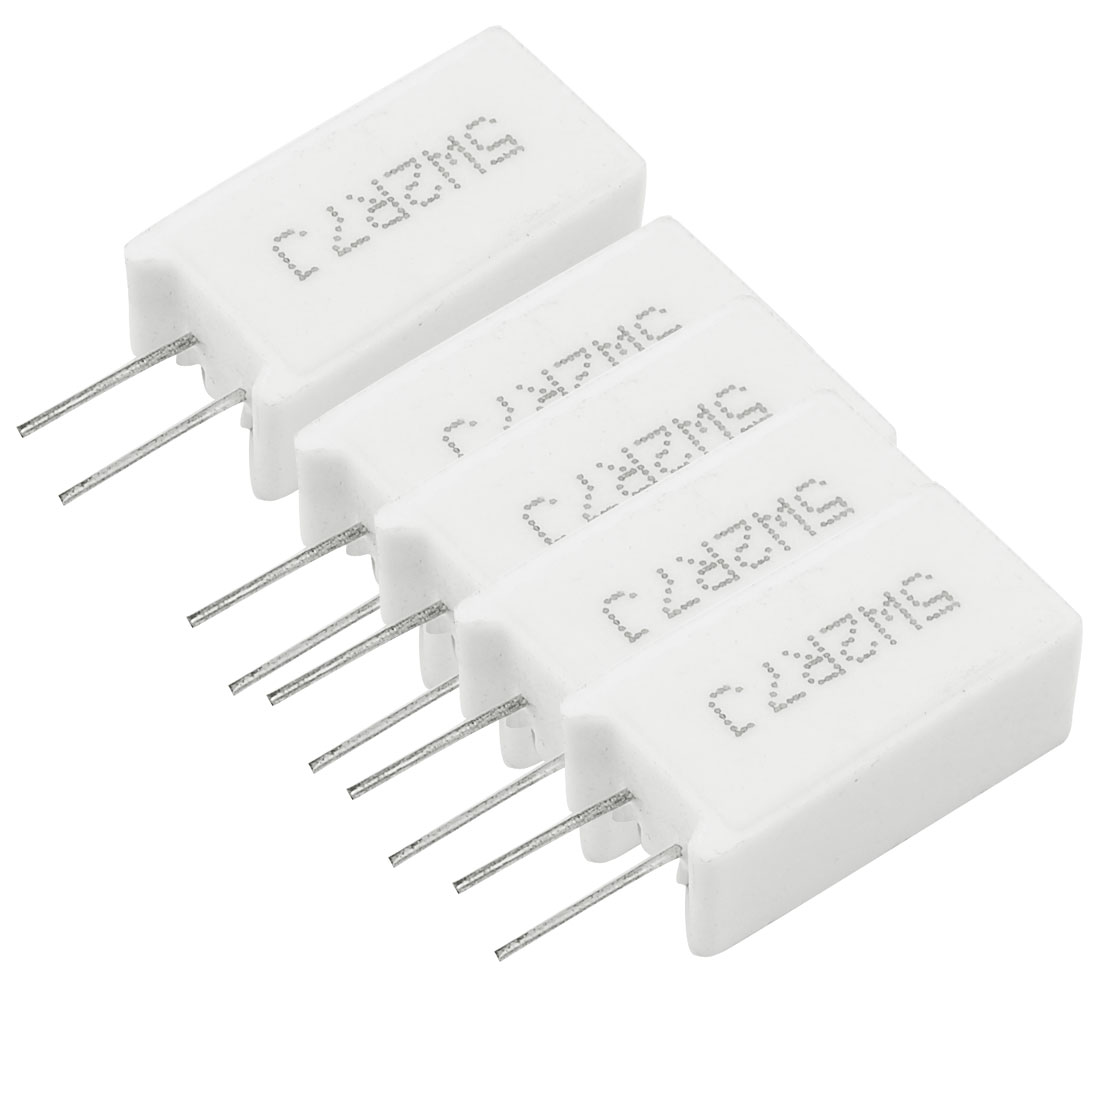 5 x 5W 2.7 Ohm 2.7R 5% Radial Lead Cement Power Resistors White